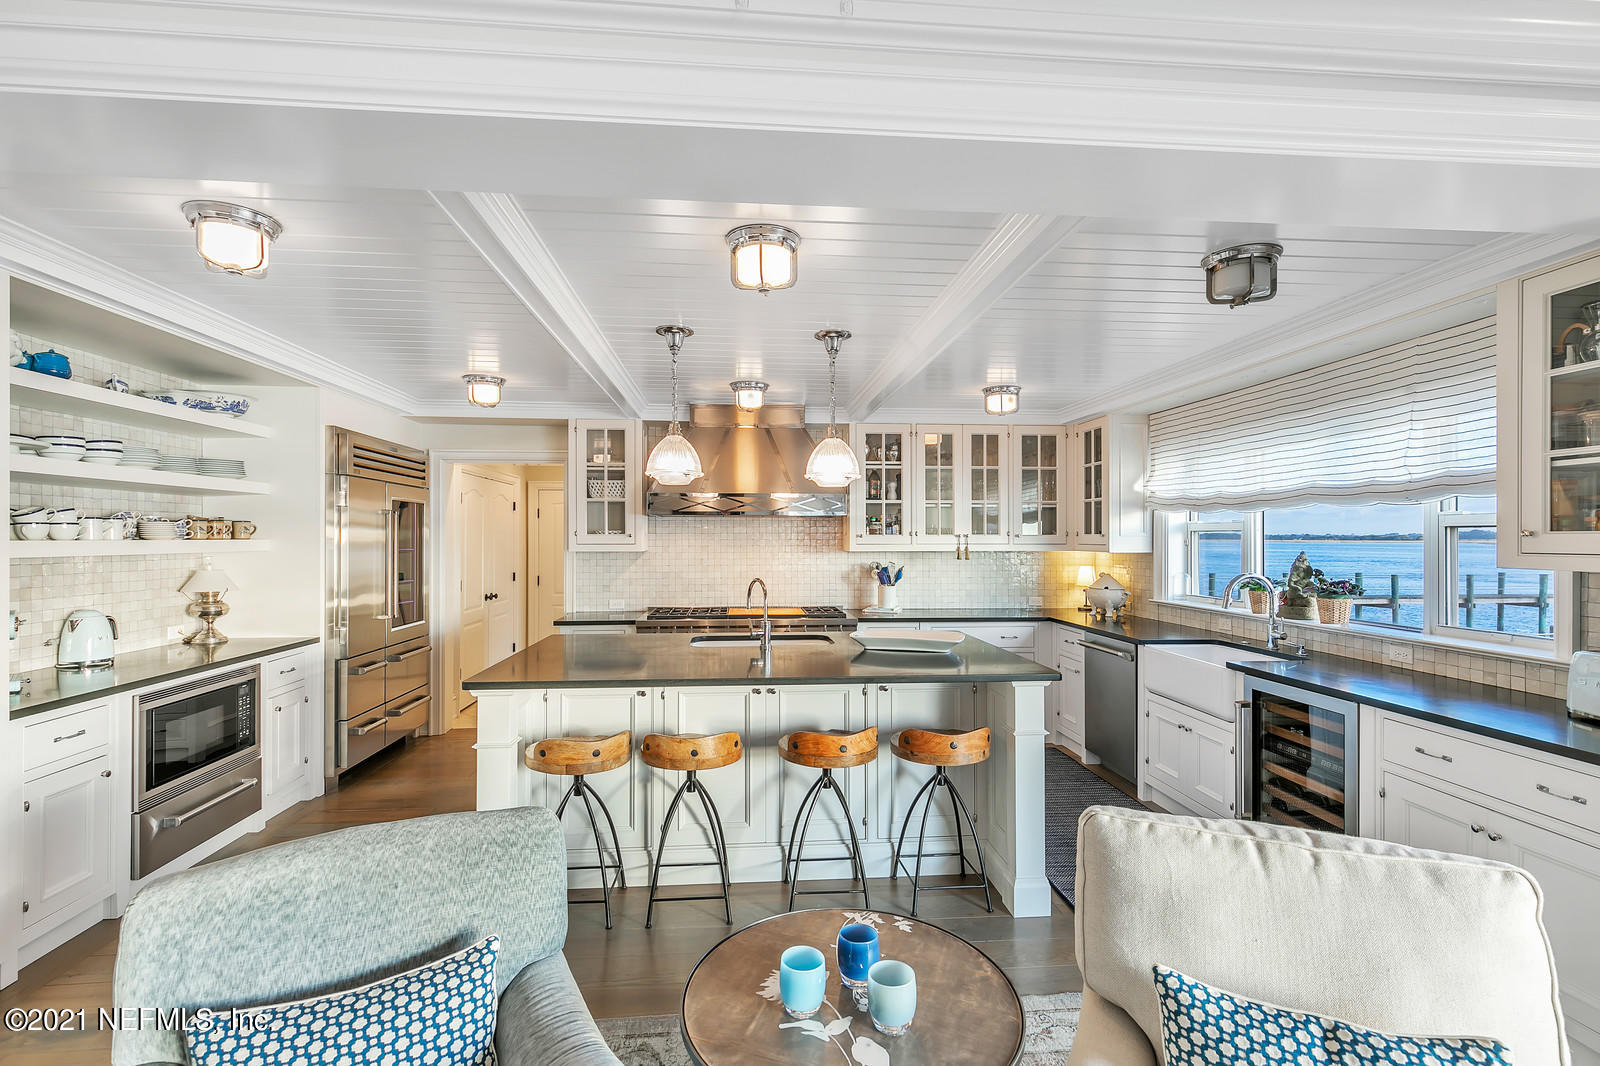 500 NORTH POINT, ST AUGUSTINE, FLORIDA 32084, 6 Bedrooms Bedrooms, ,6 BathroomsBathrooms,Residential,For sale,NORTH POINT,1102648